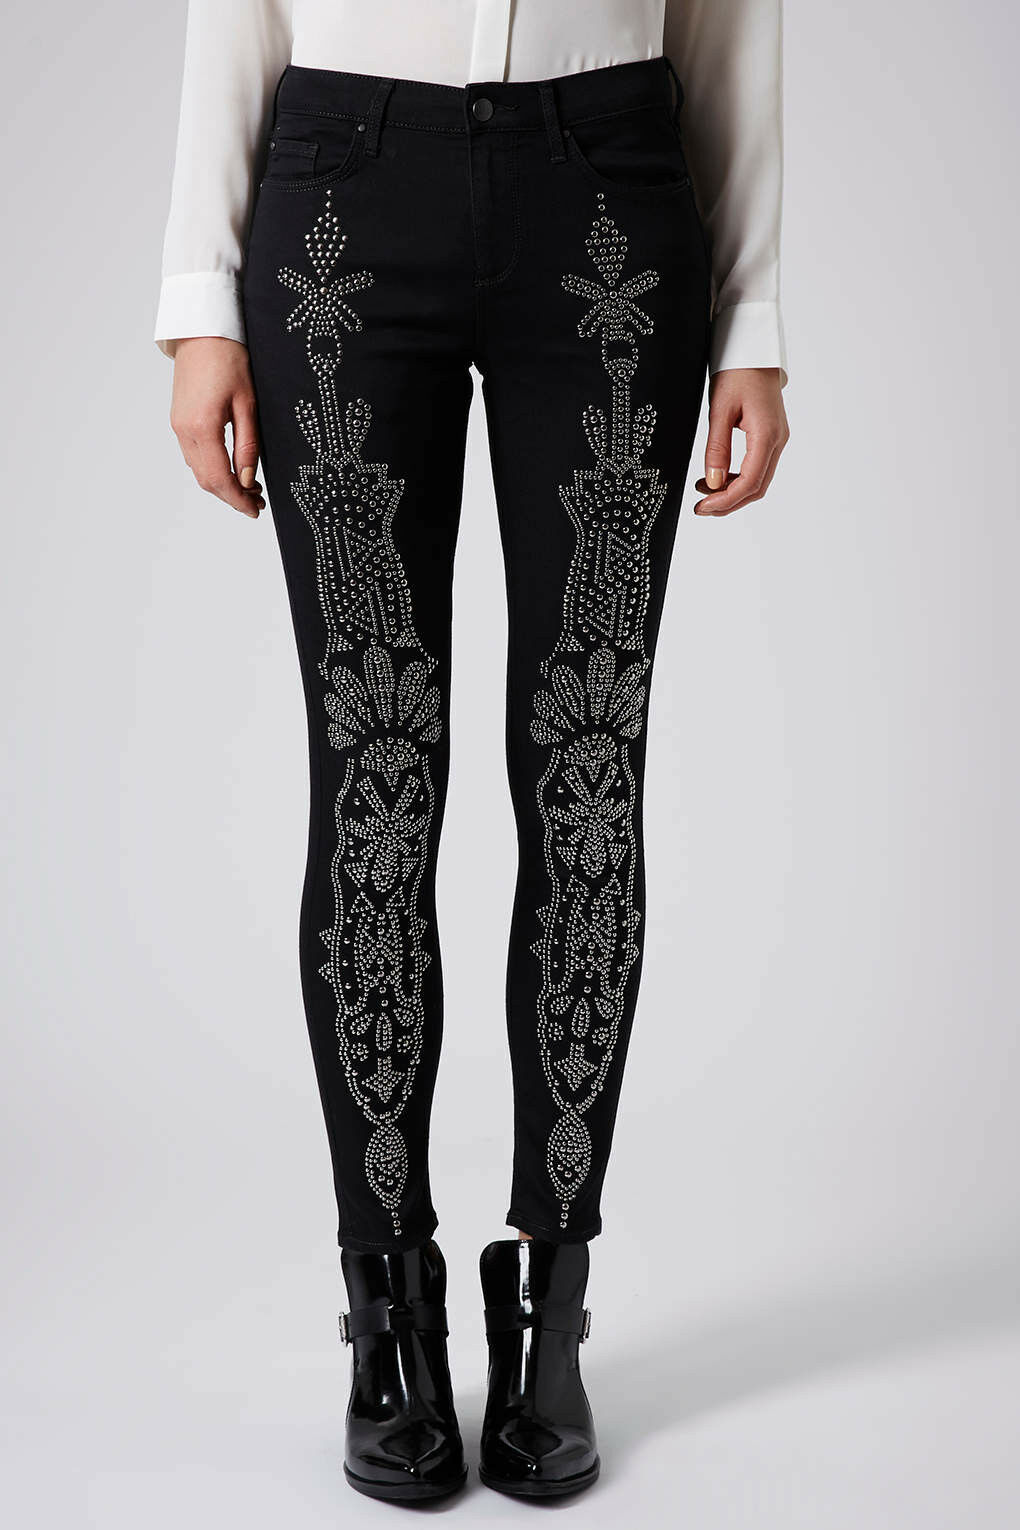 Topshop Womens Studded Leigh Skinny Trousers Pants  Jeans UK10 EUR38 US6  hot limited edition